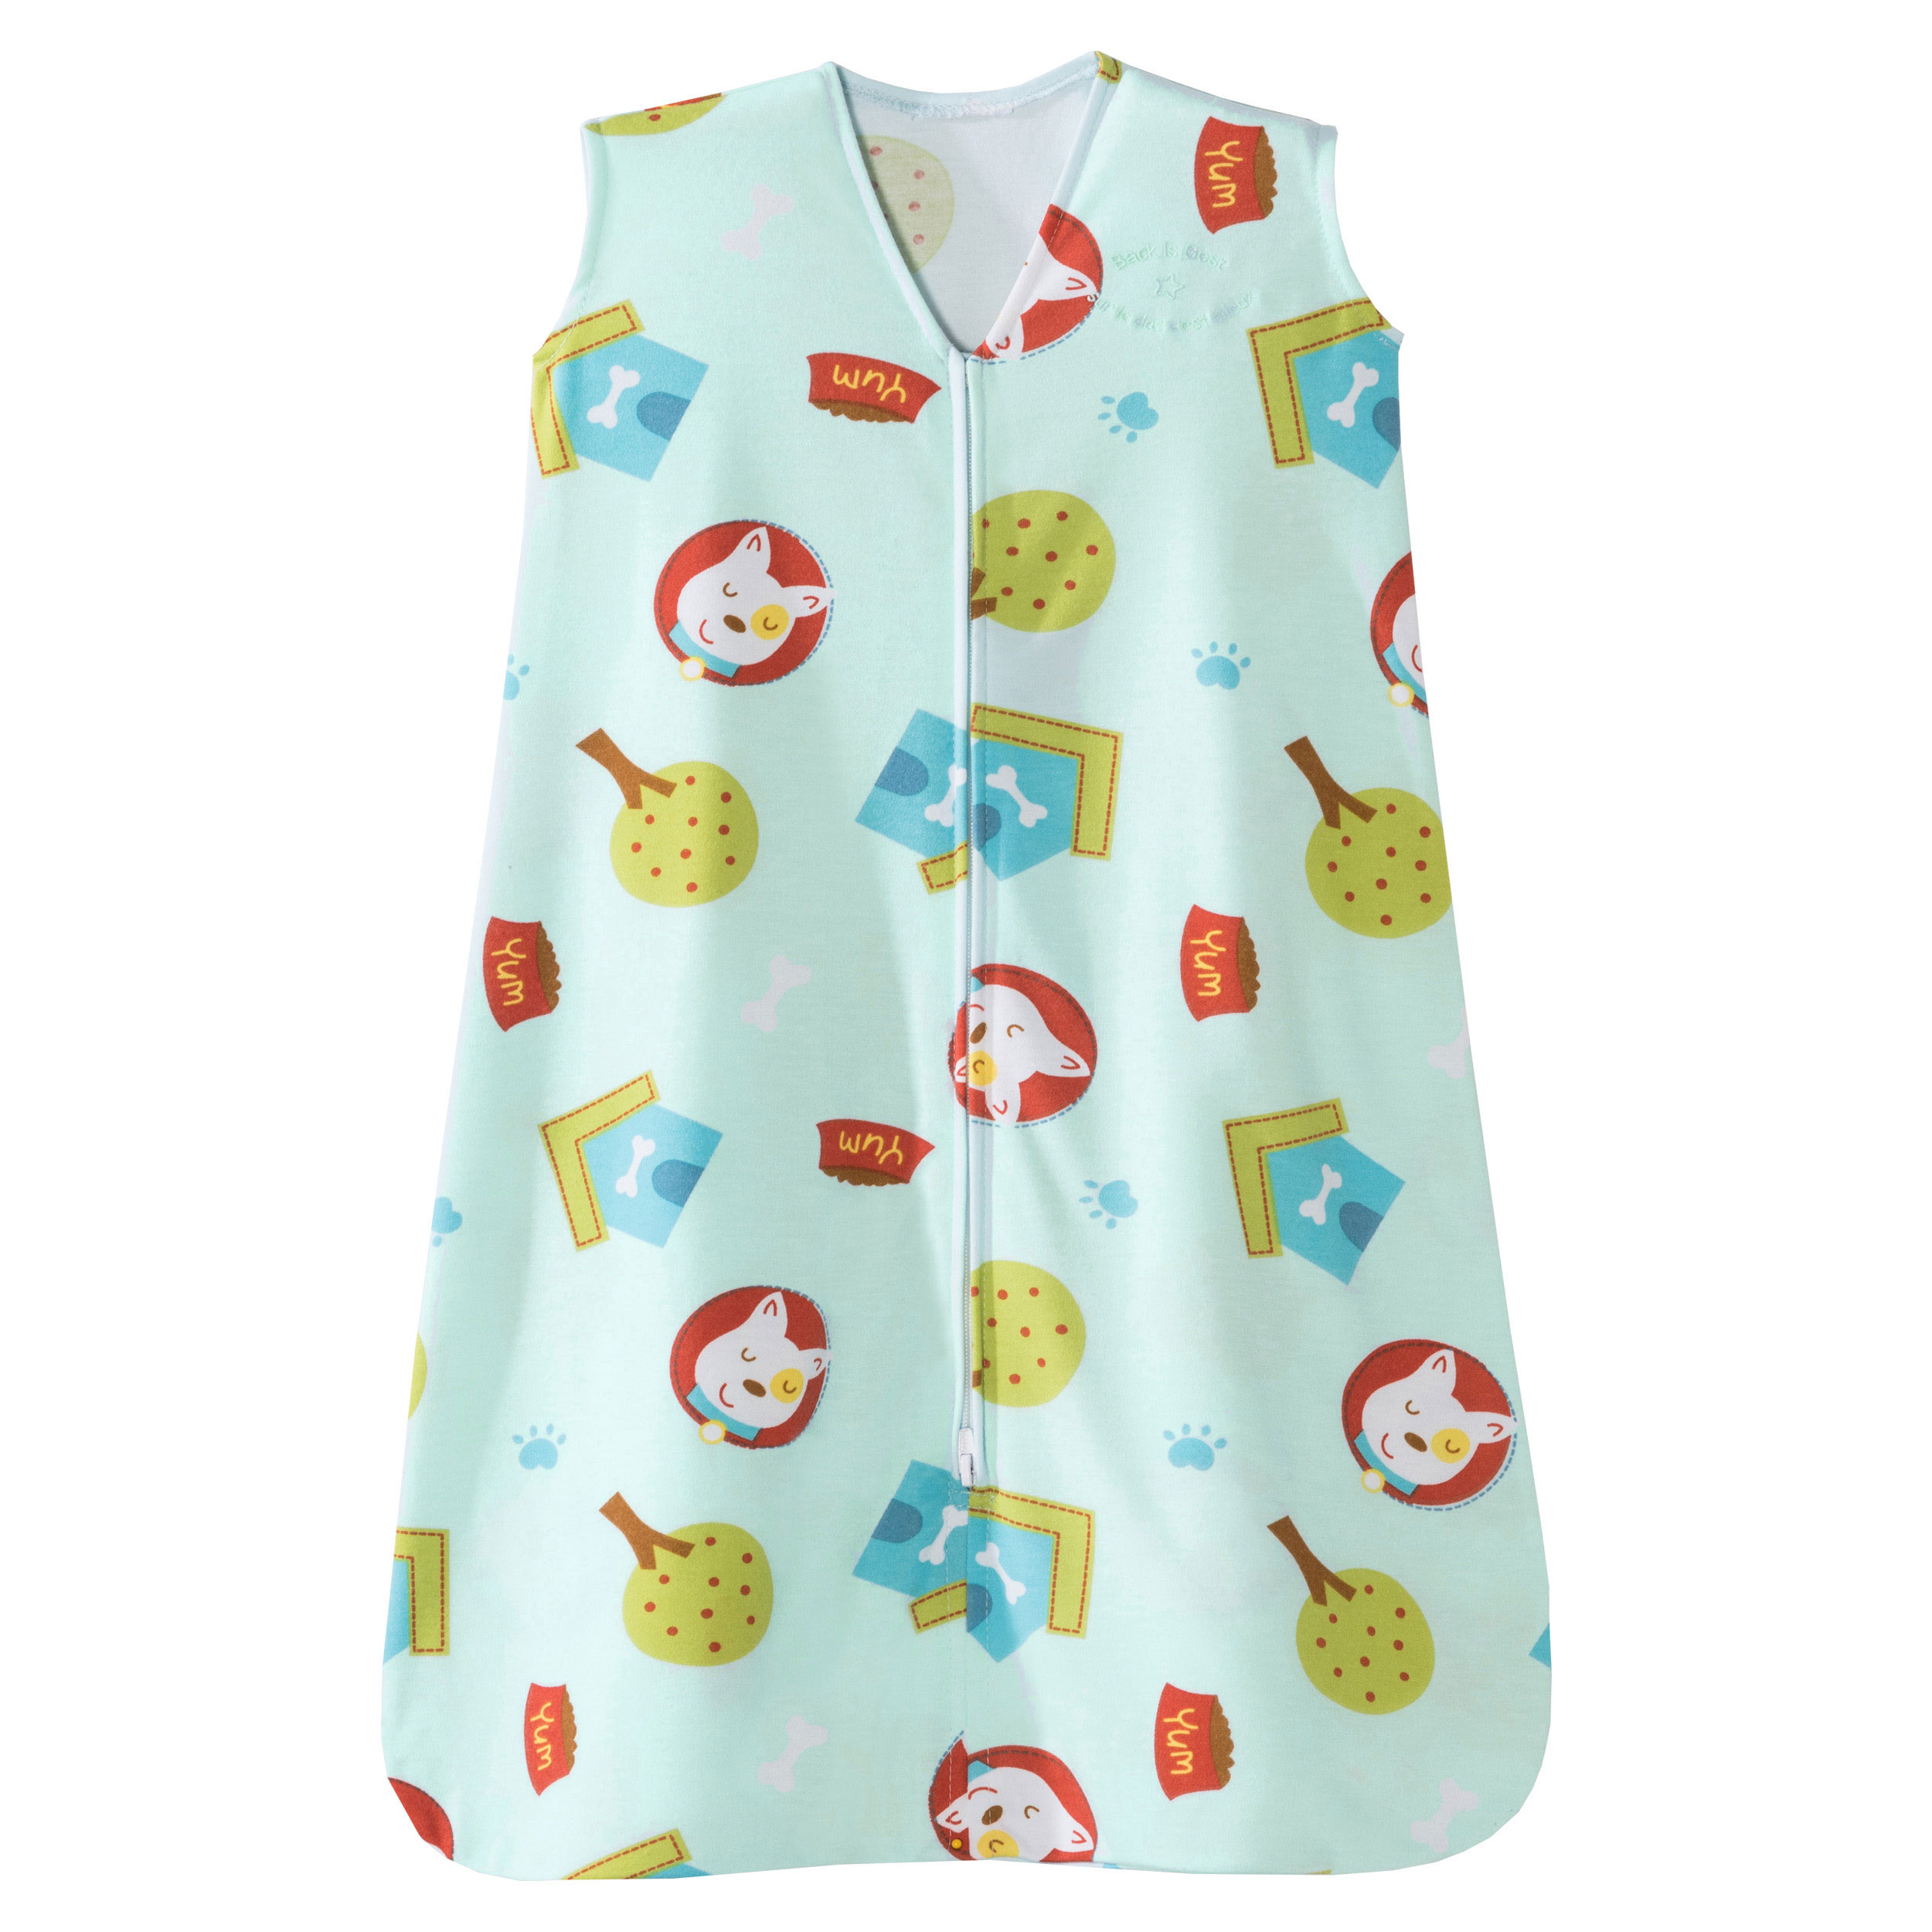 HALO SleepSack Wearable Blanket - Poly Knit - Sleeveless Dogs and Paws  -Medium - 6-12 Months, 16-24 pounds